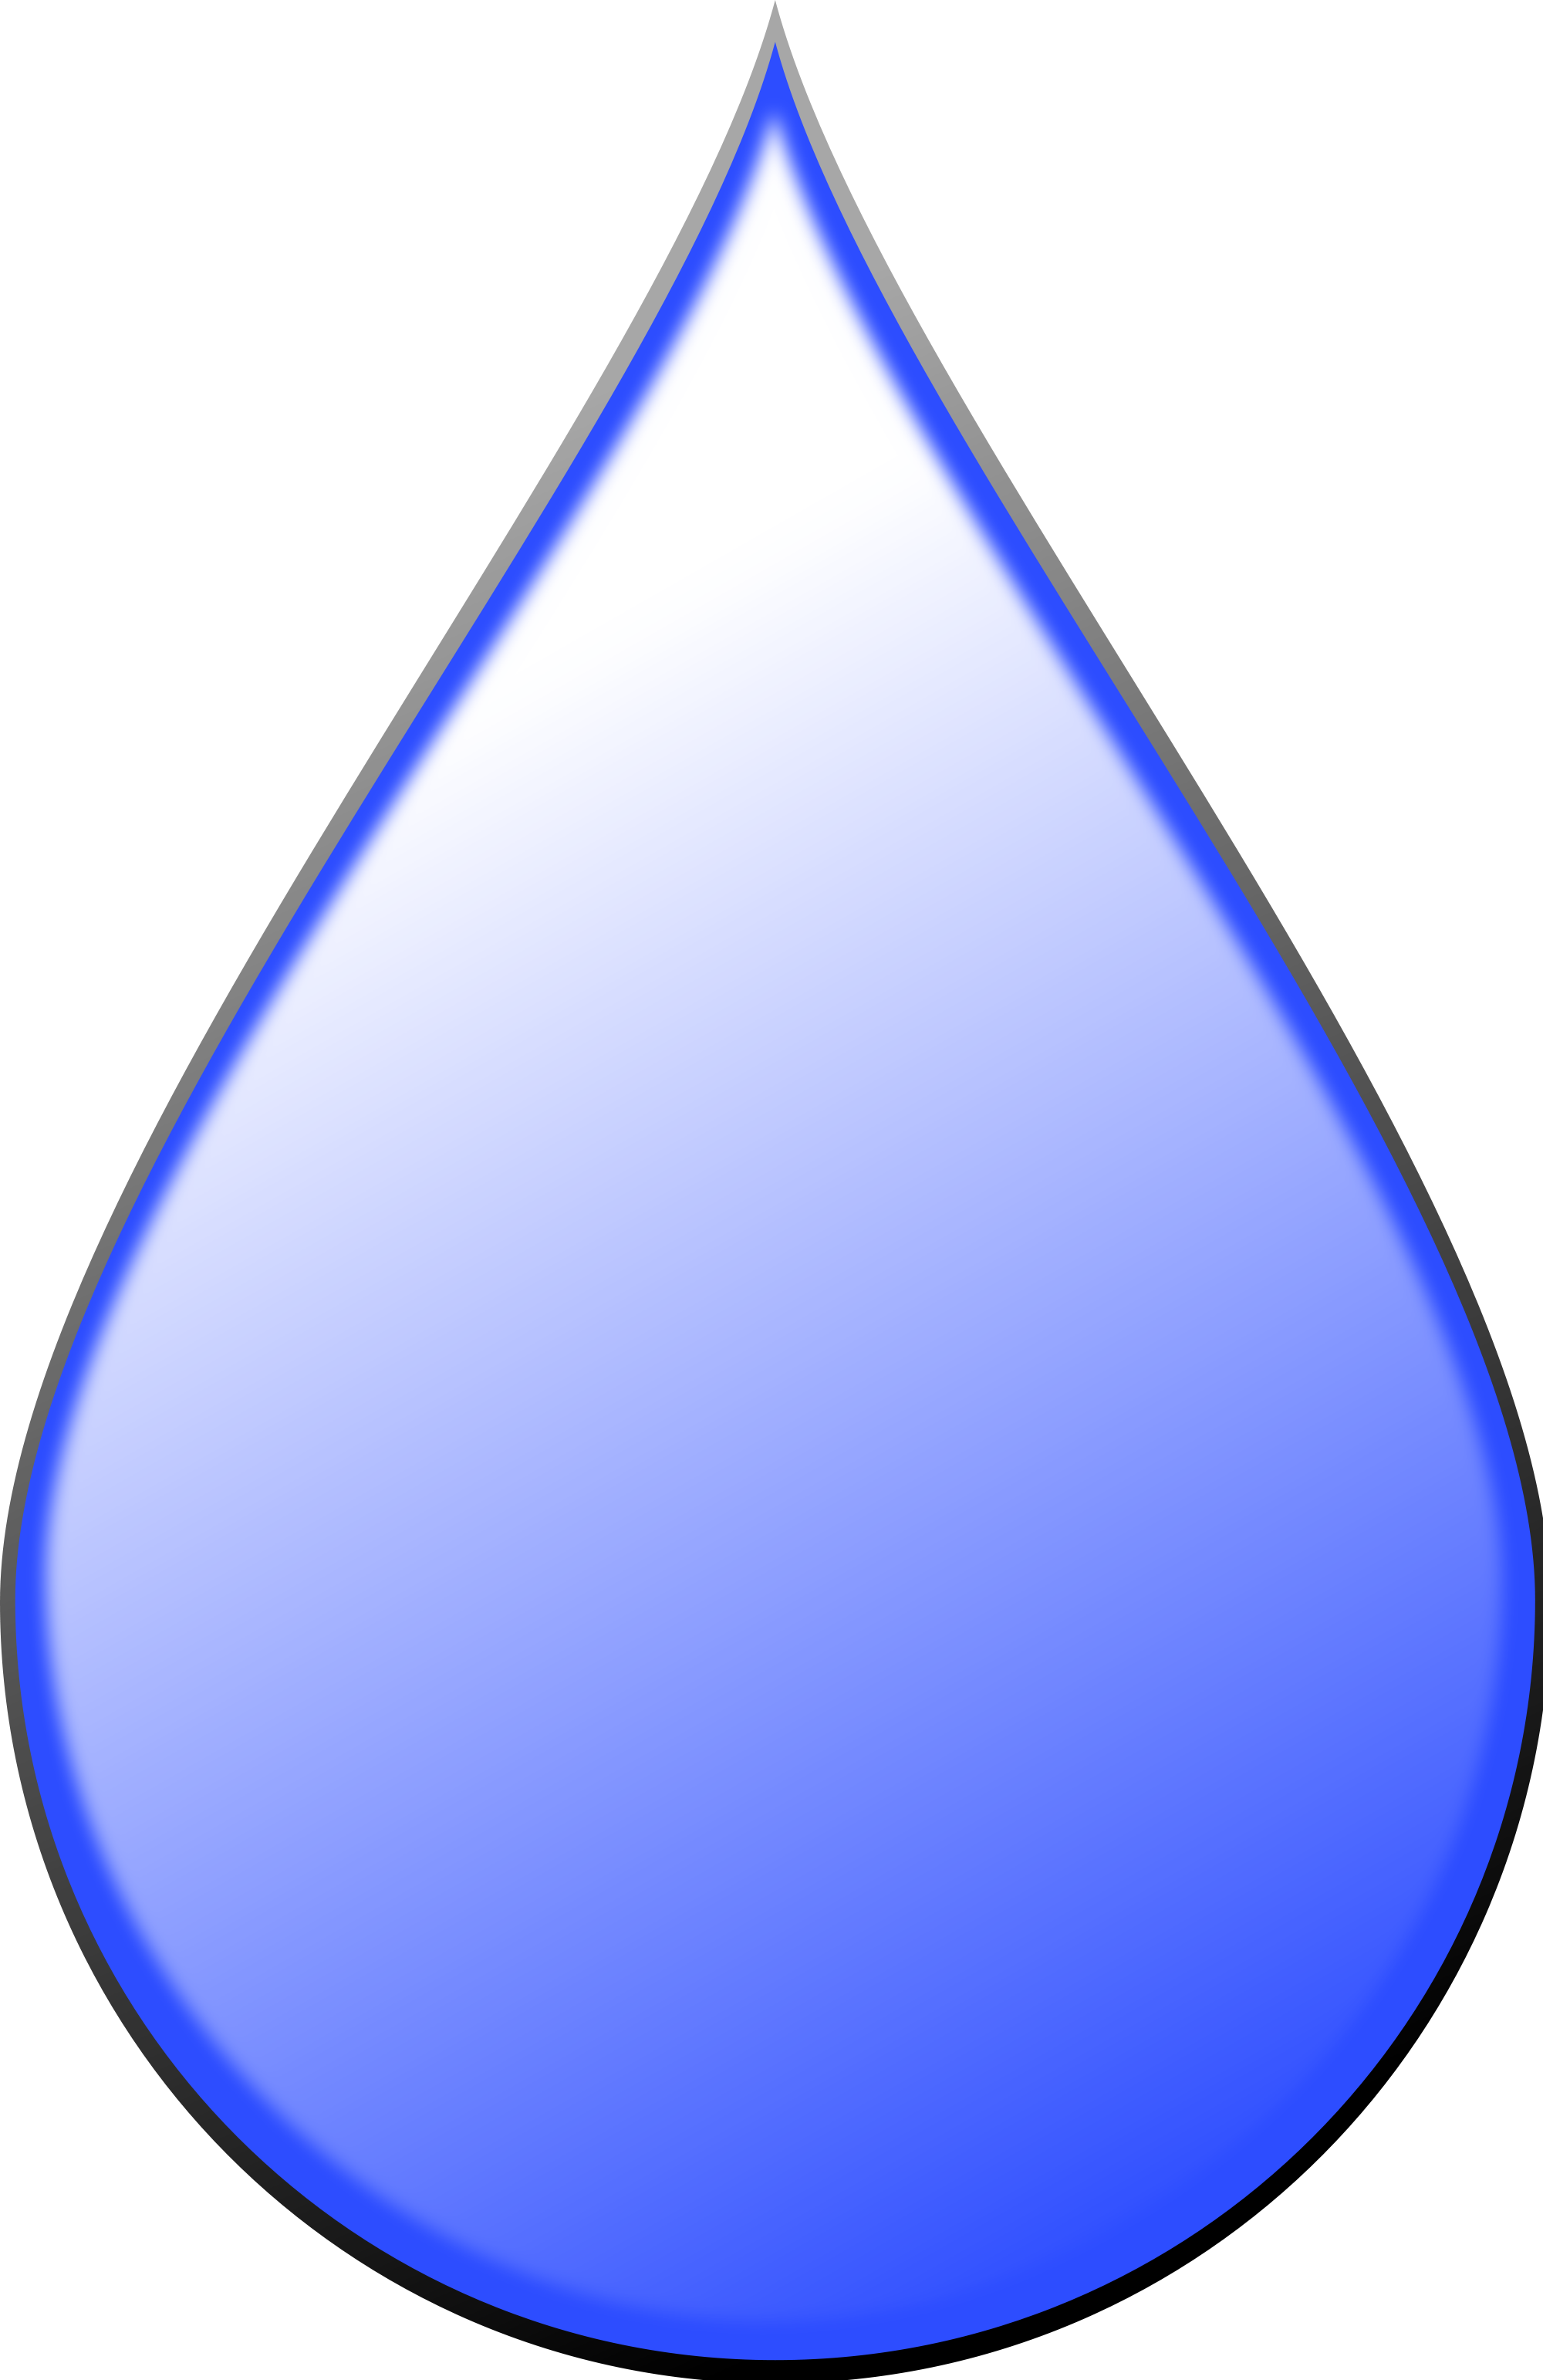 Raindrop clipart svg. File glossy wikimedia commons